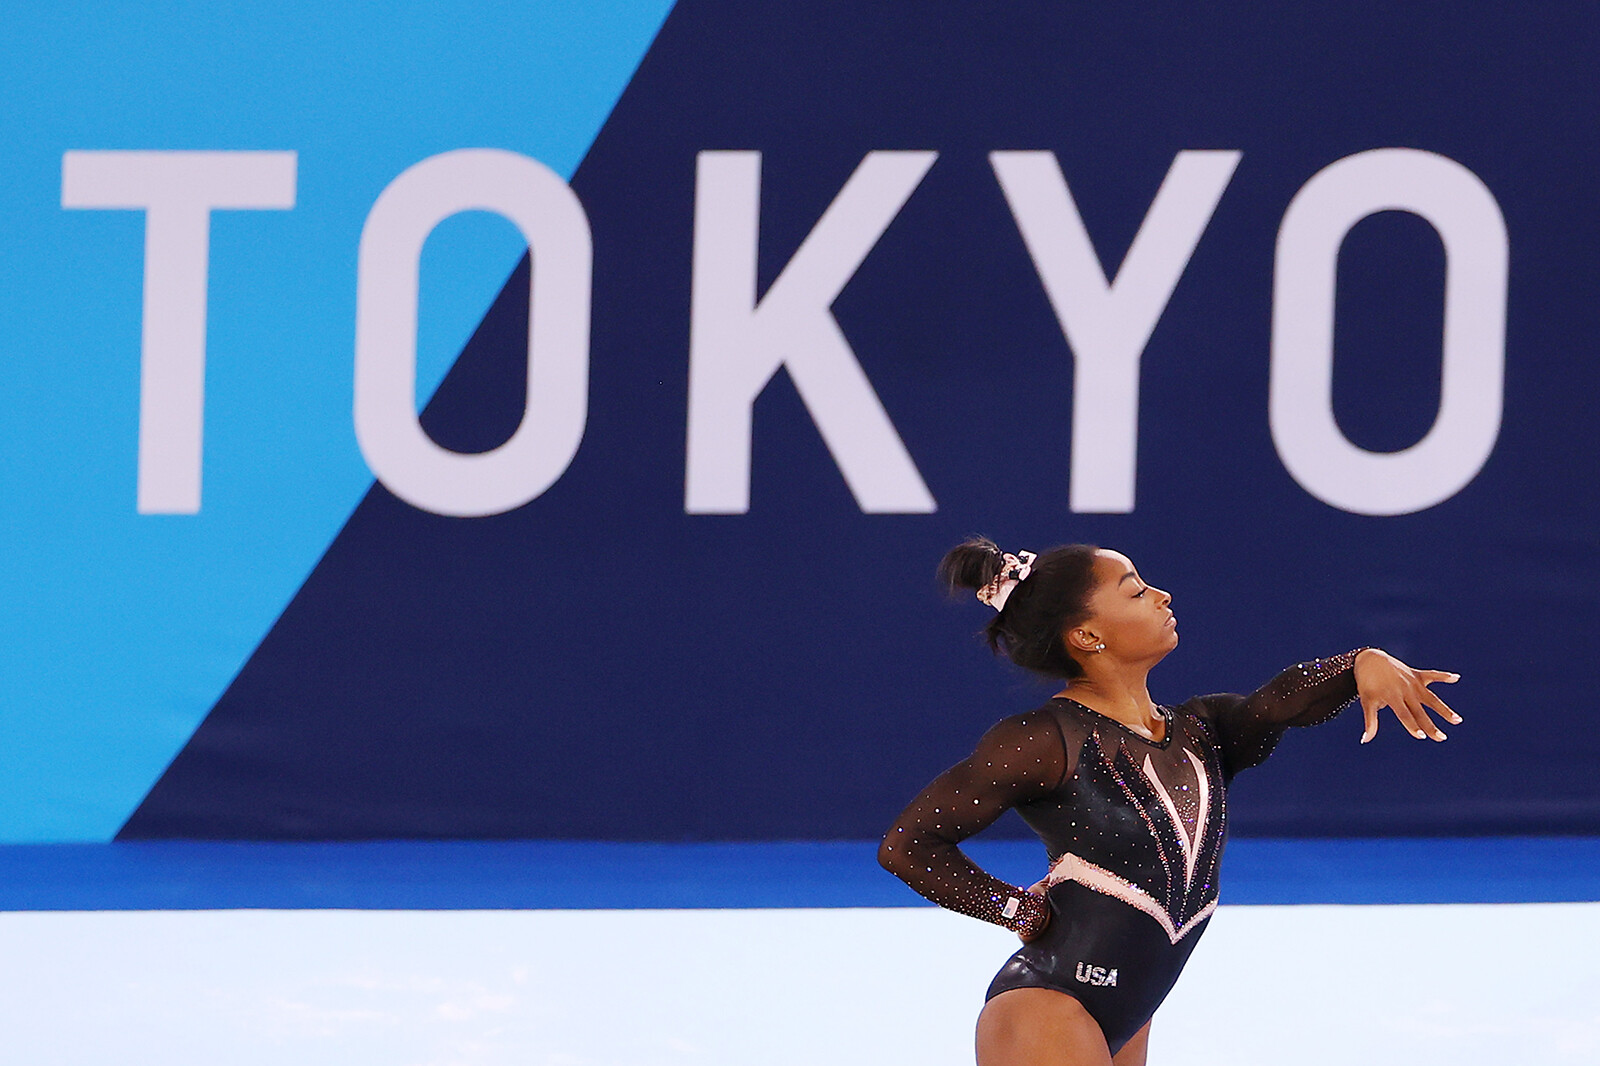 With Tokyo 2020 overshadowed by Covid-19, athletes are left to bring light to troubled Olympics